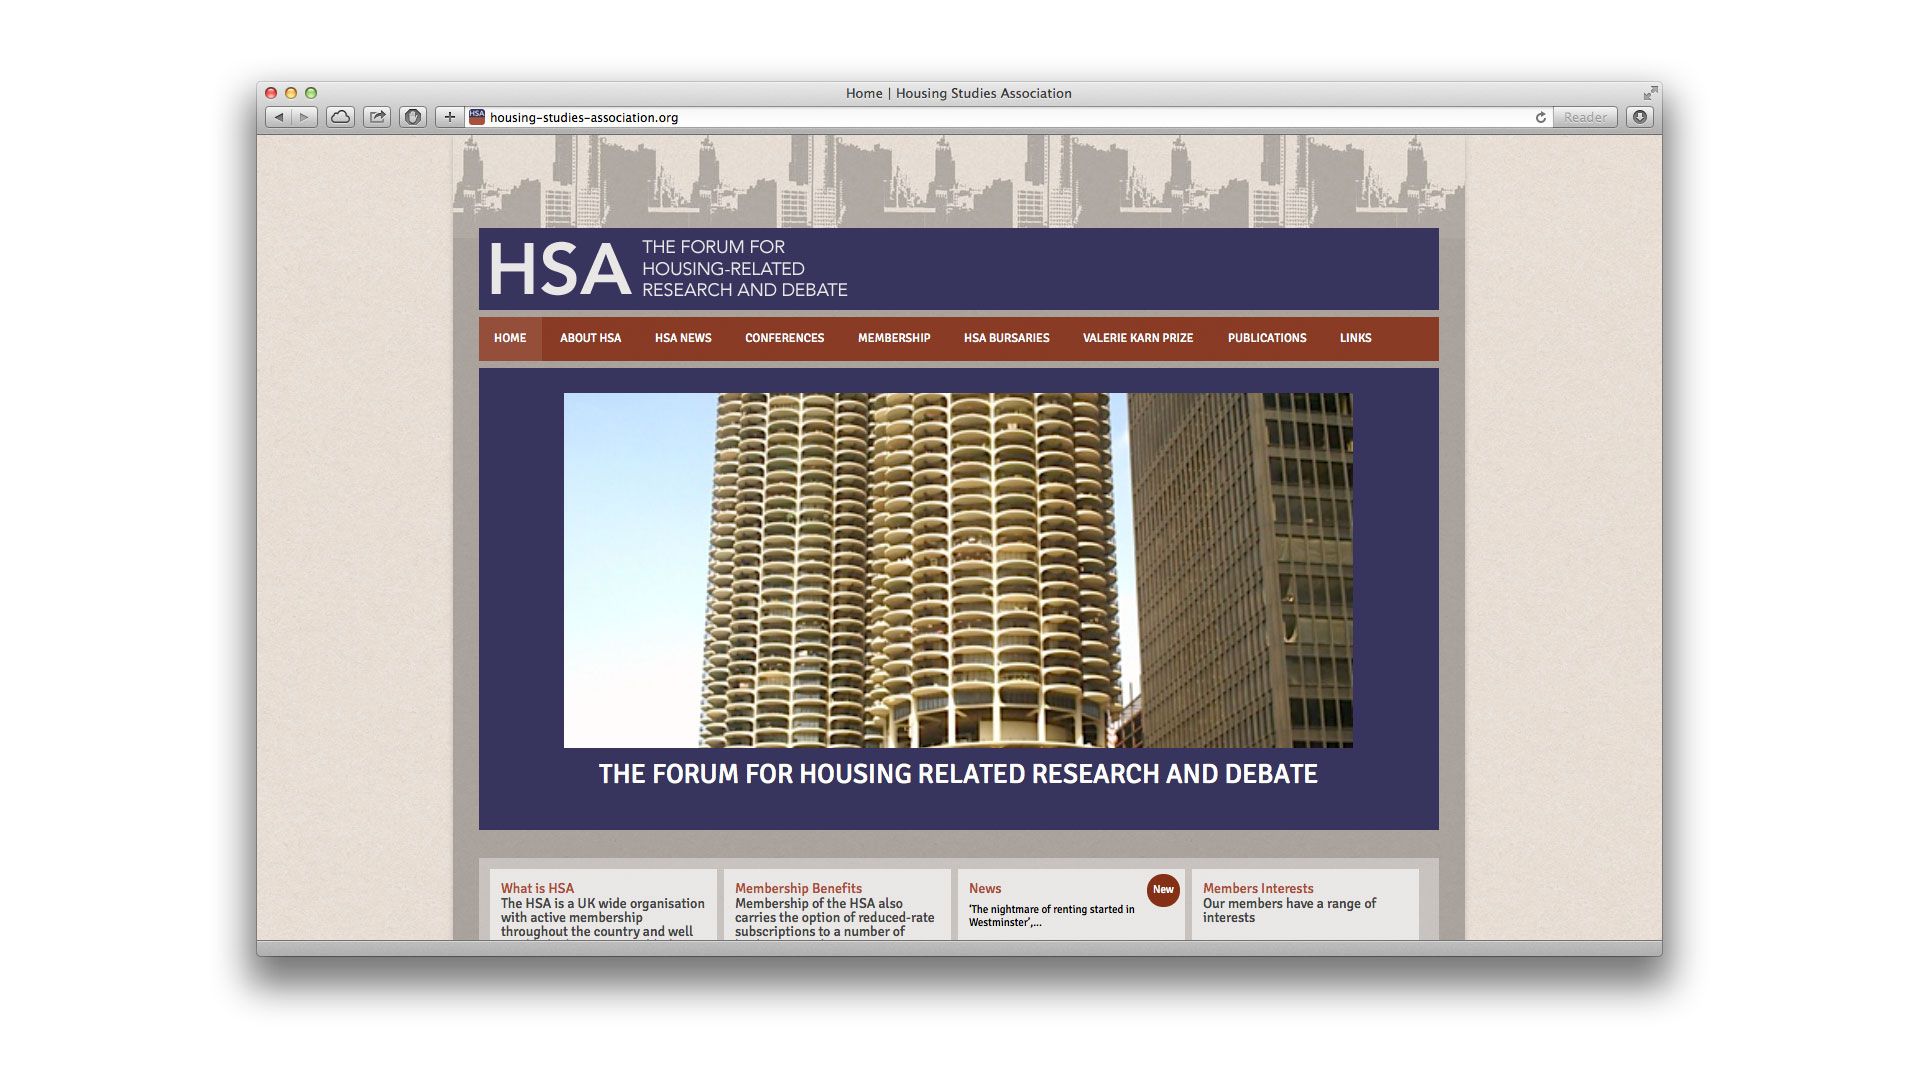 HSA home page